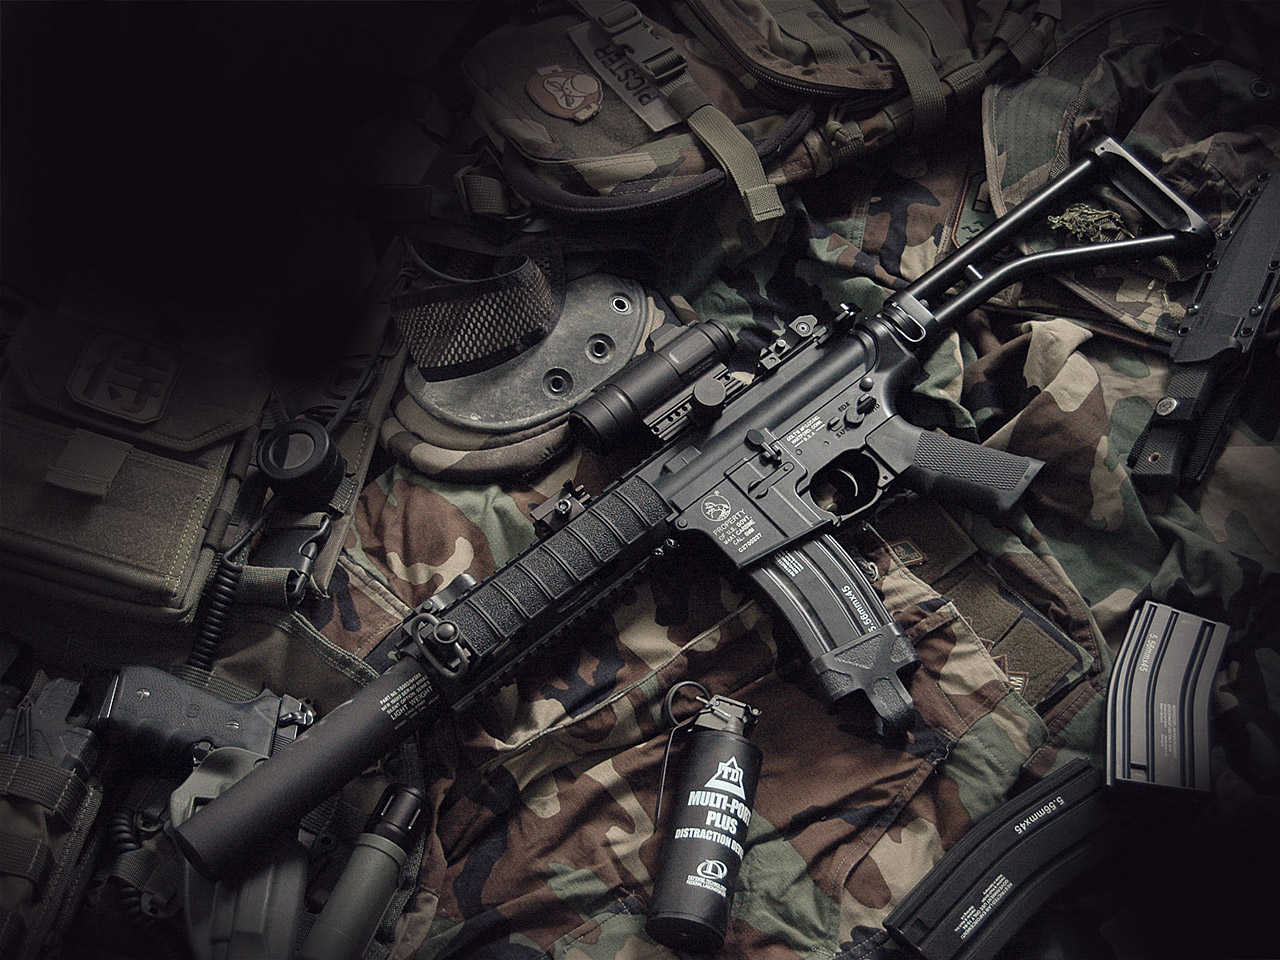 Ar 15 Wallpaper Wallpapers HD Quality 1280x960